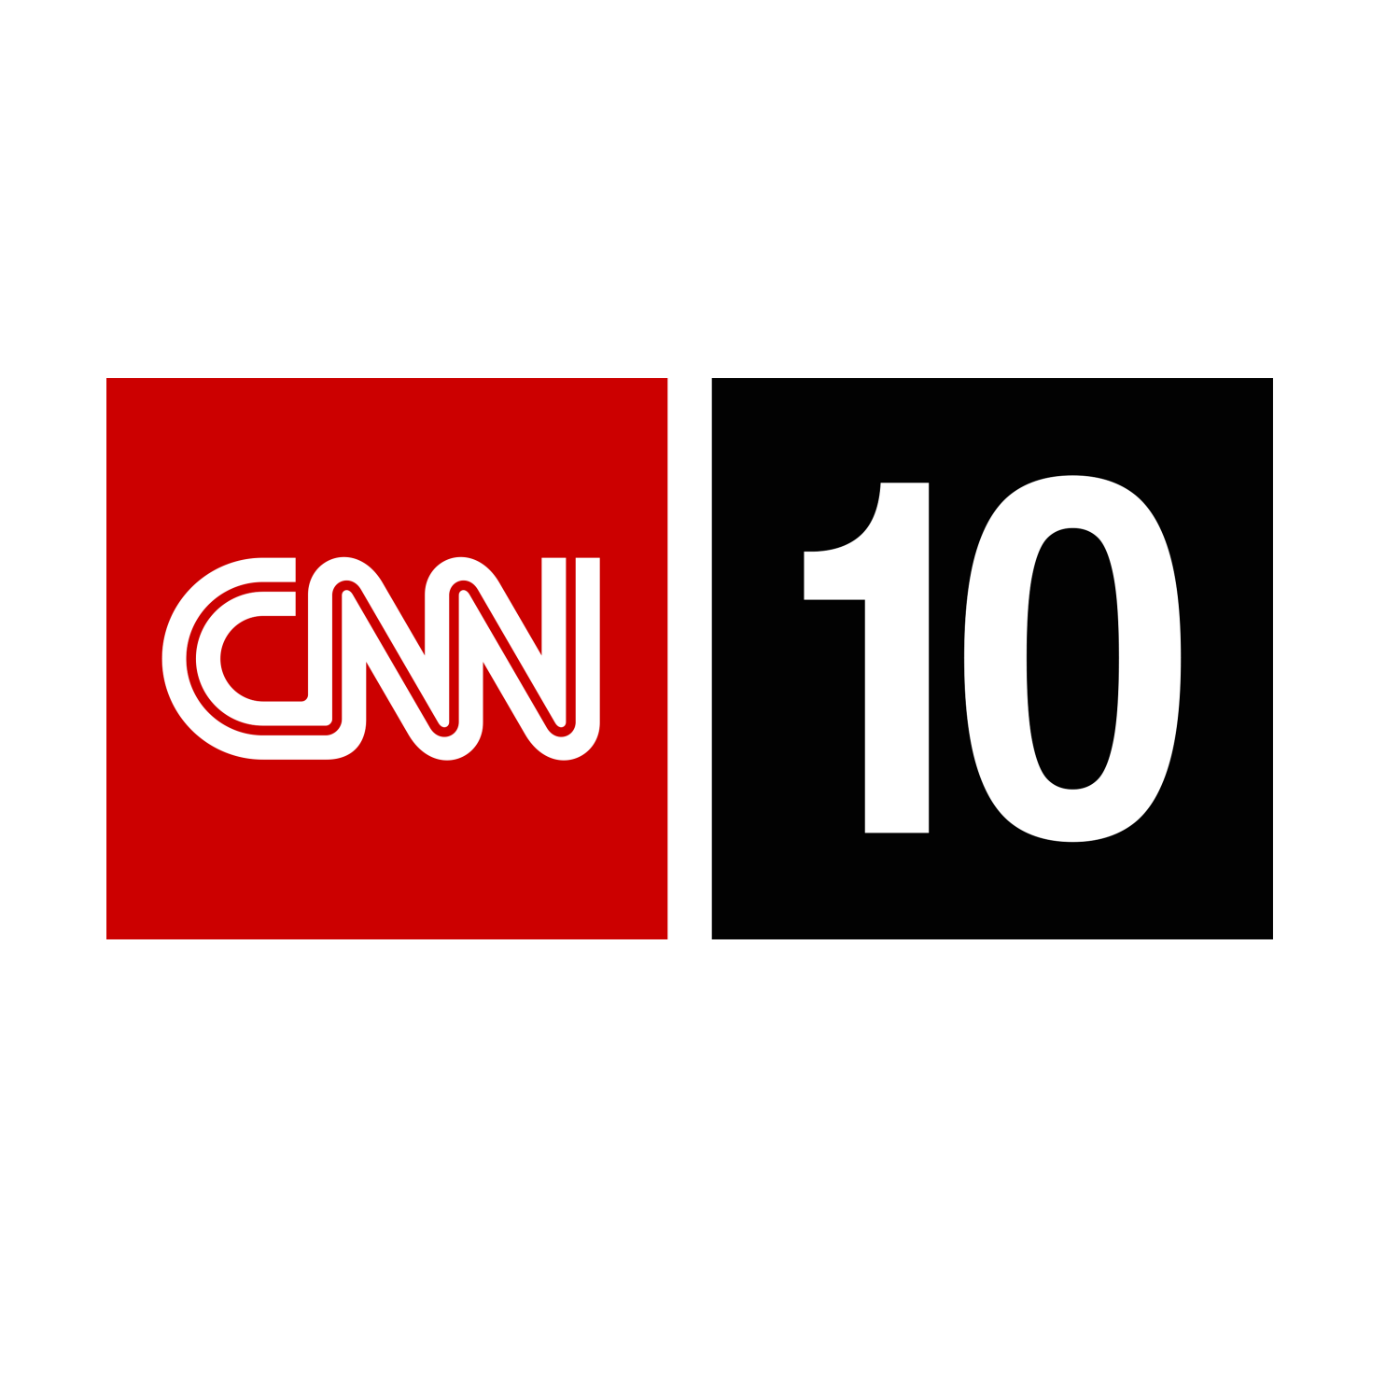 CNN Student News - October 3, 2012